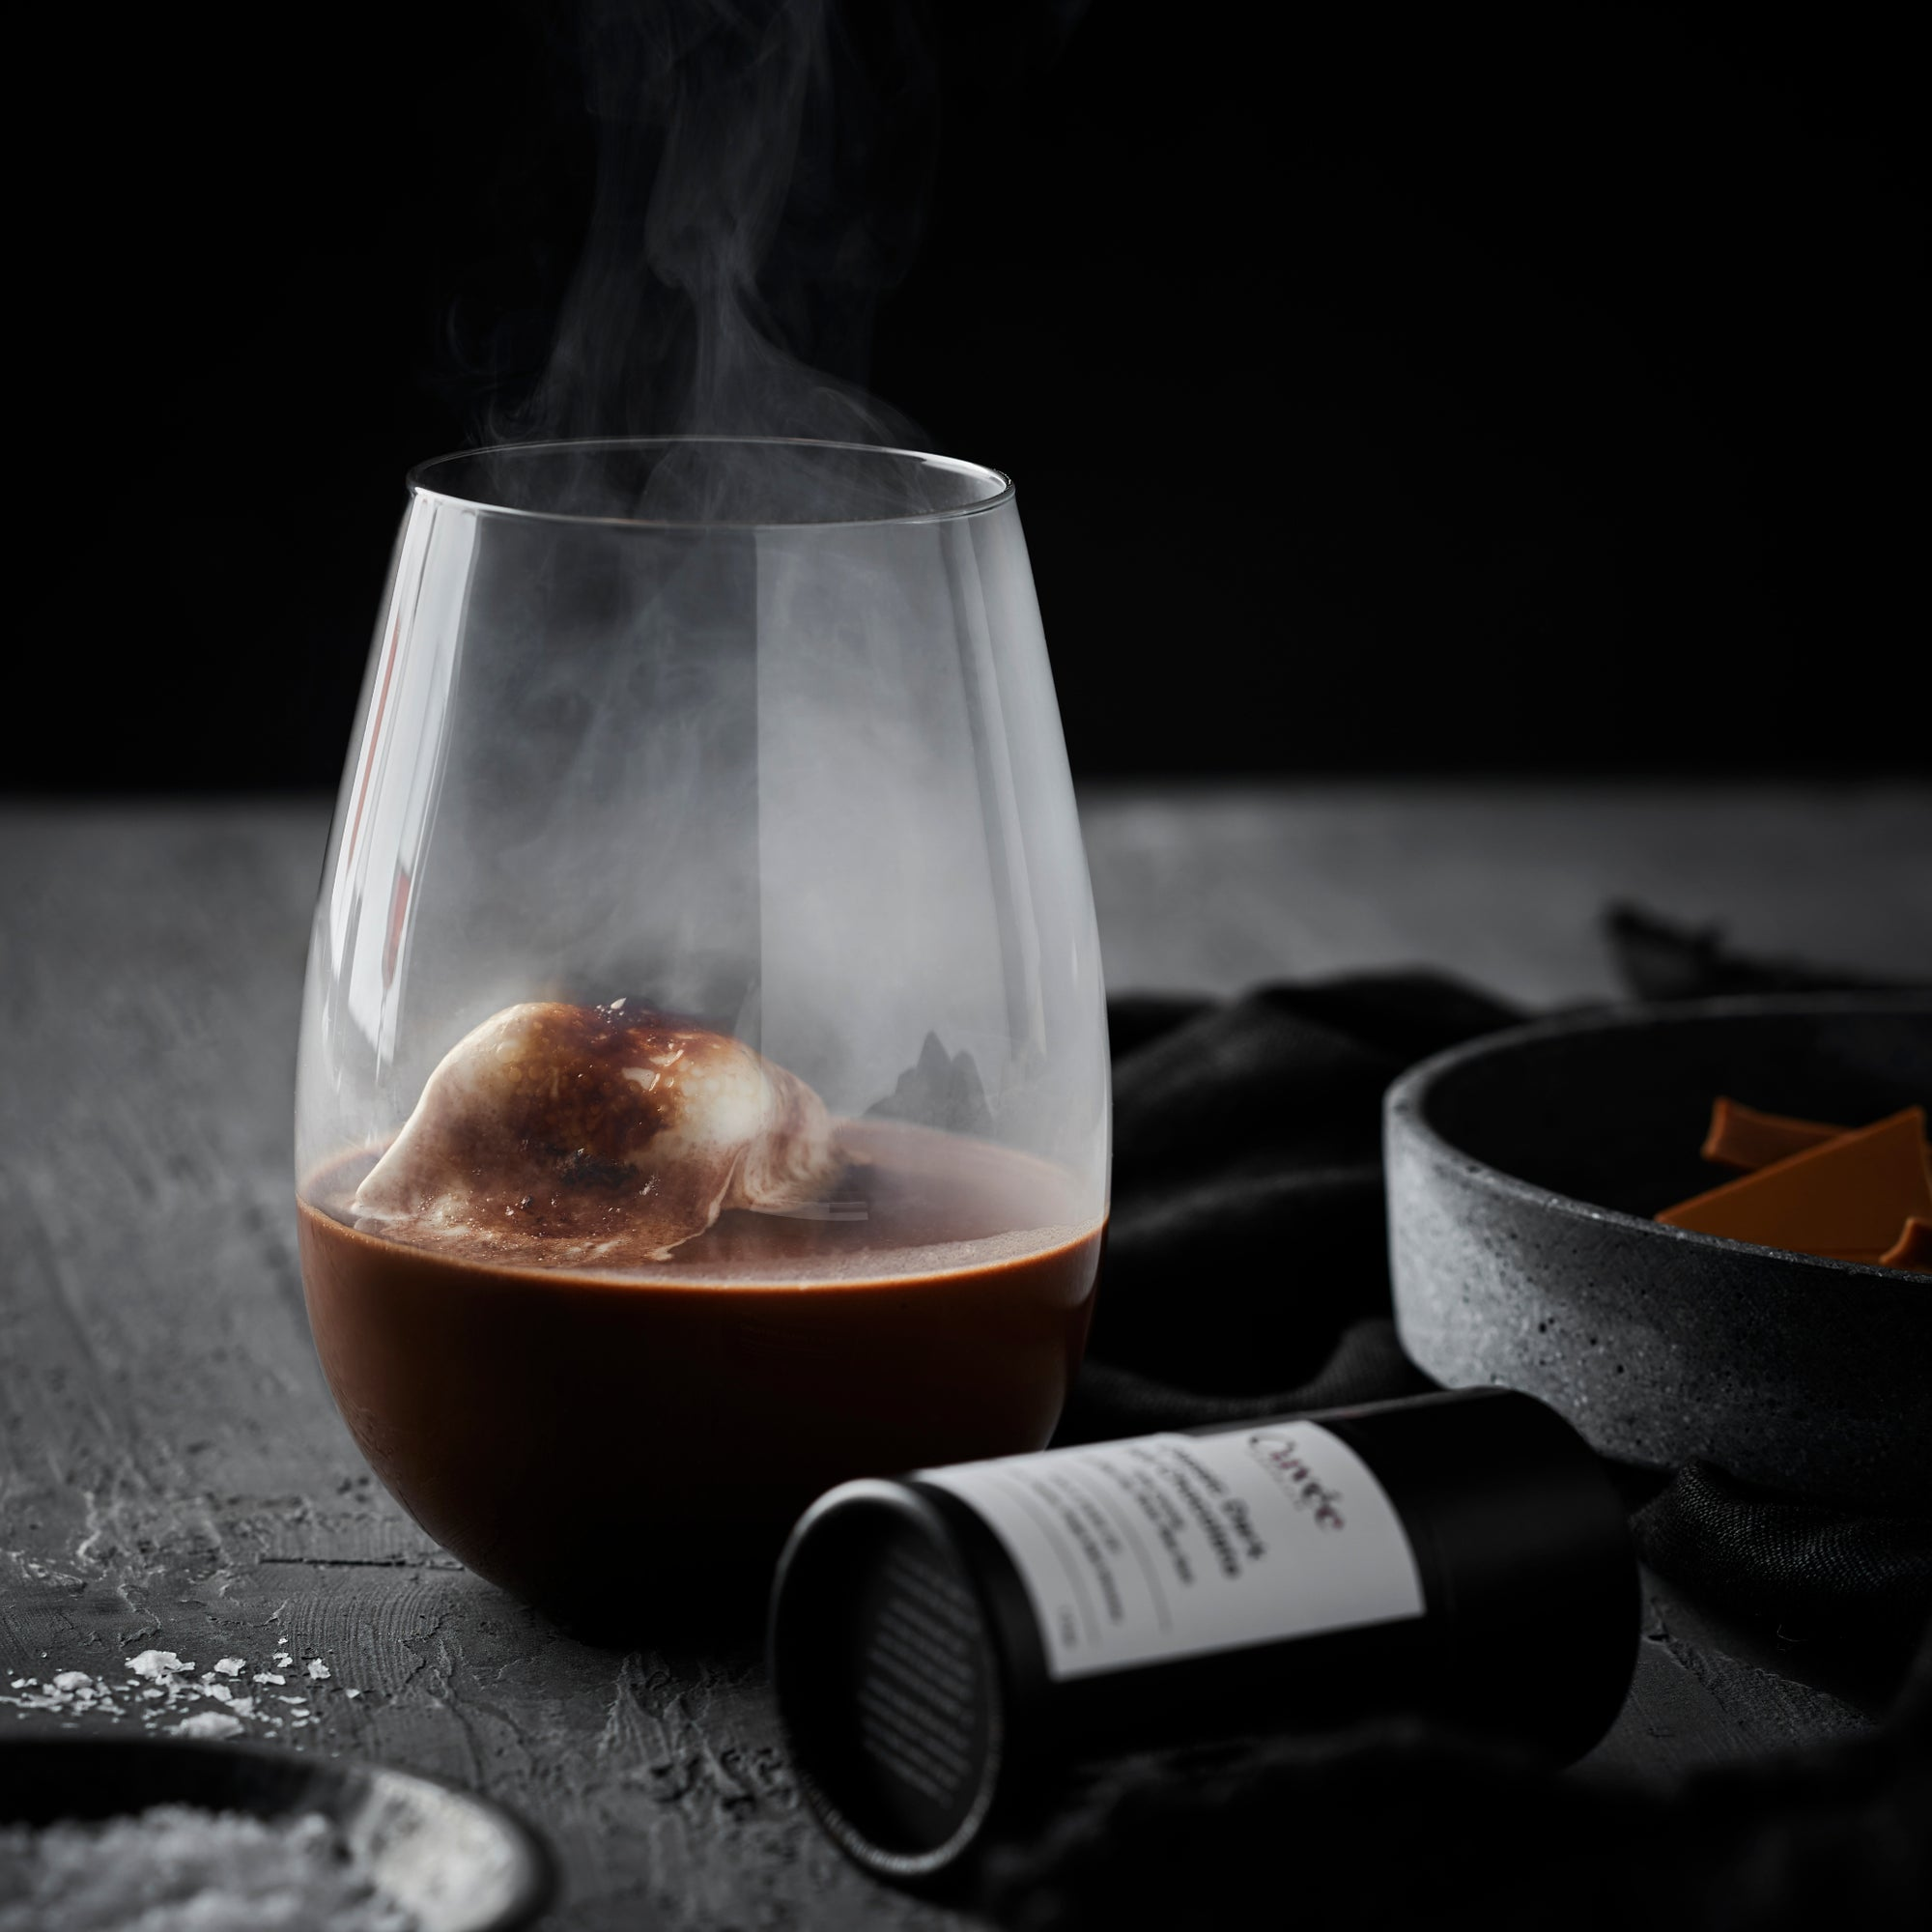 Cuvée 75% Chili Hot Chocolate - 150g  (approx. 5 cups)